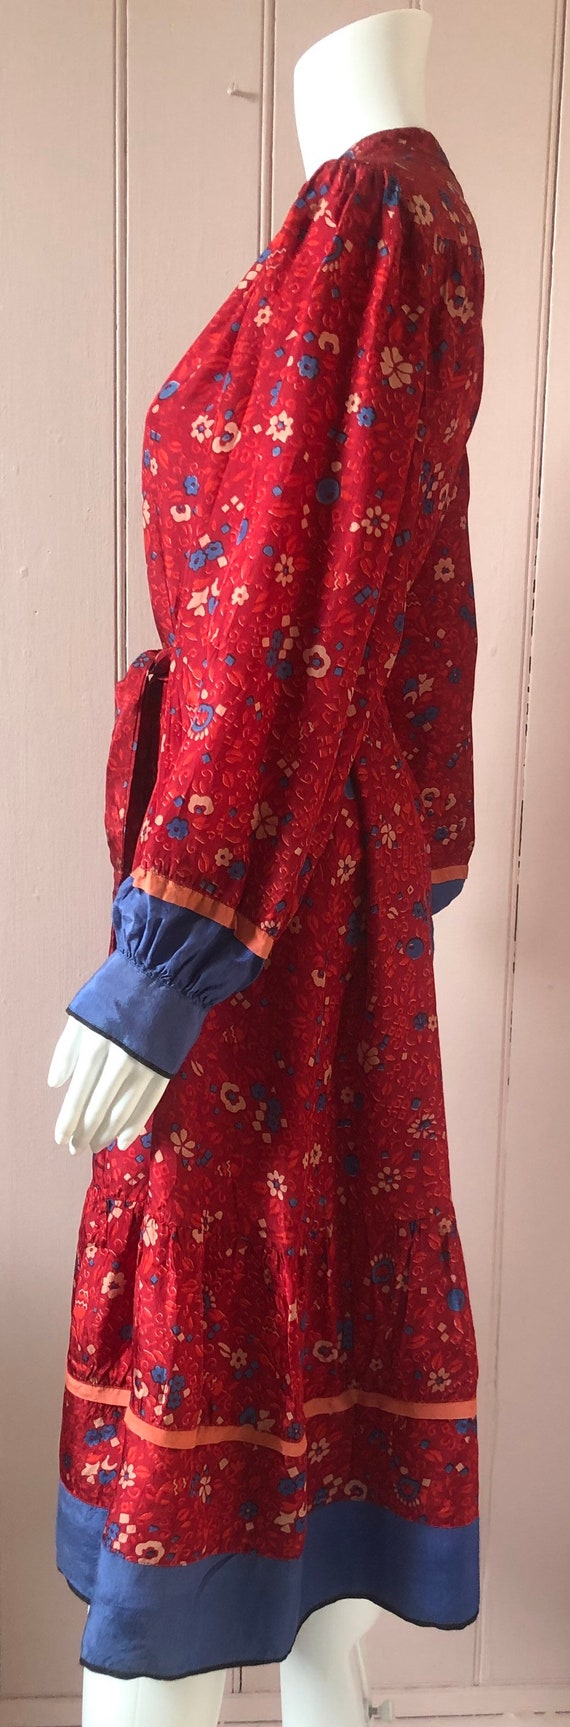 Lovely 1970's/80's Indian Dress - image 6